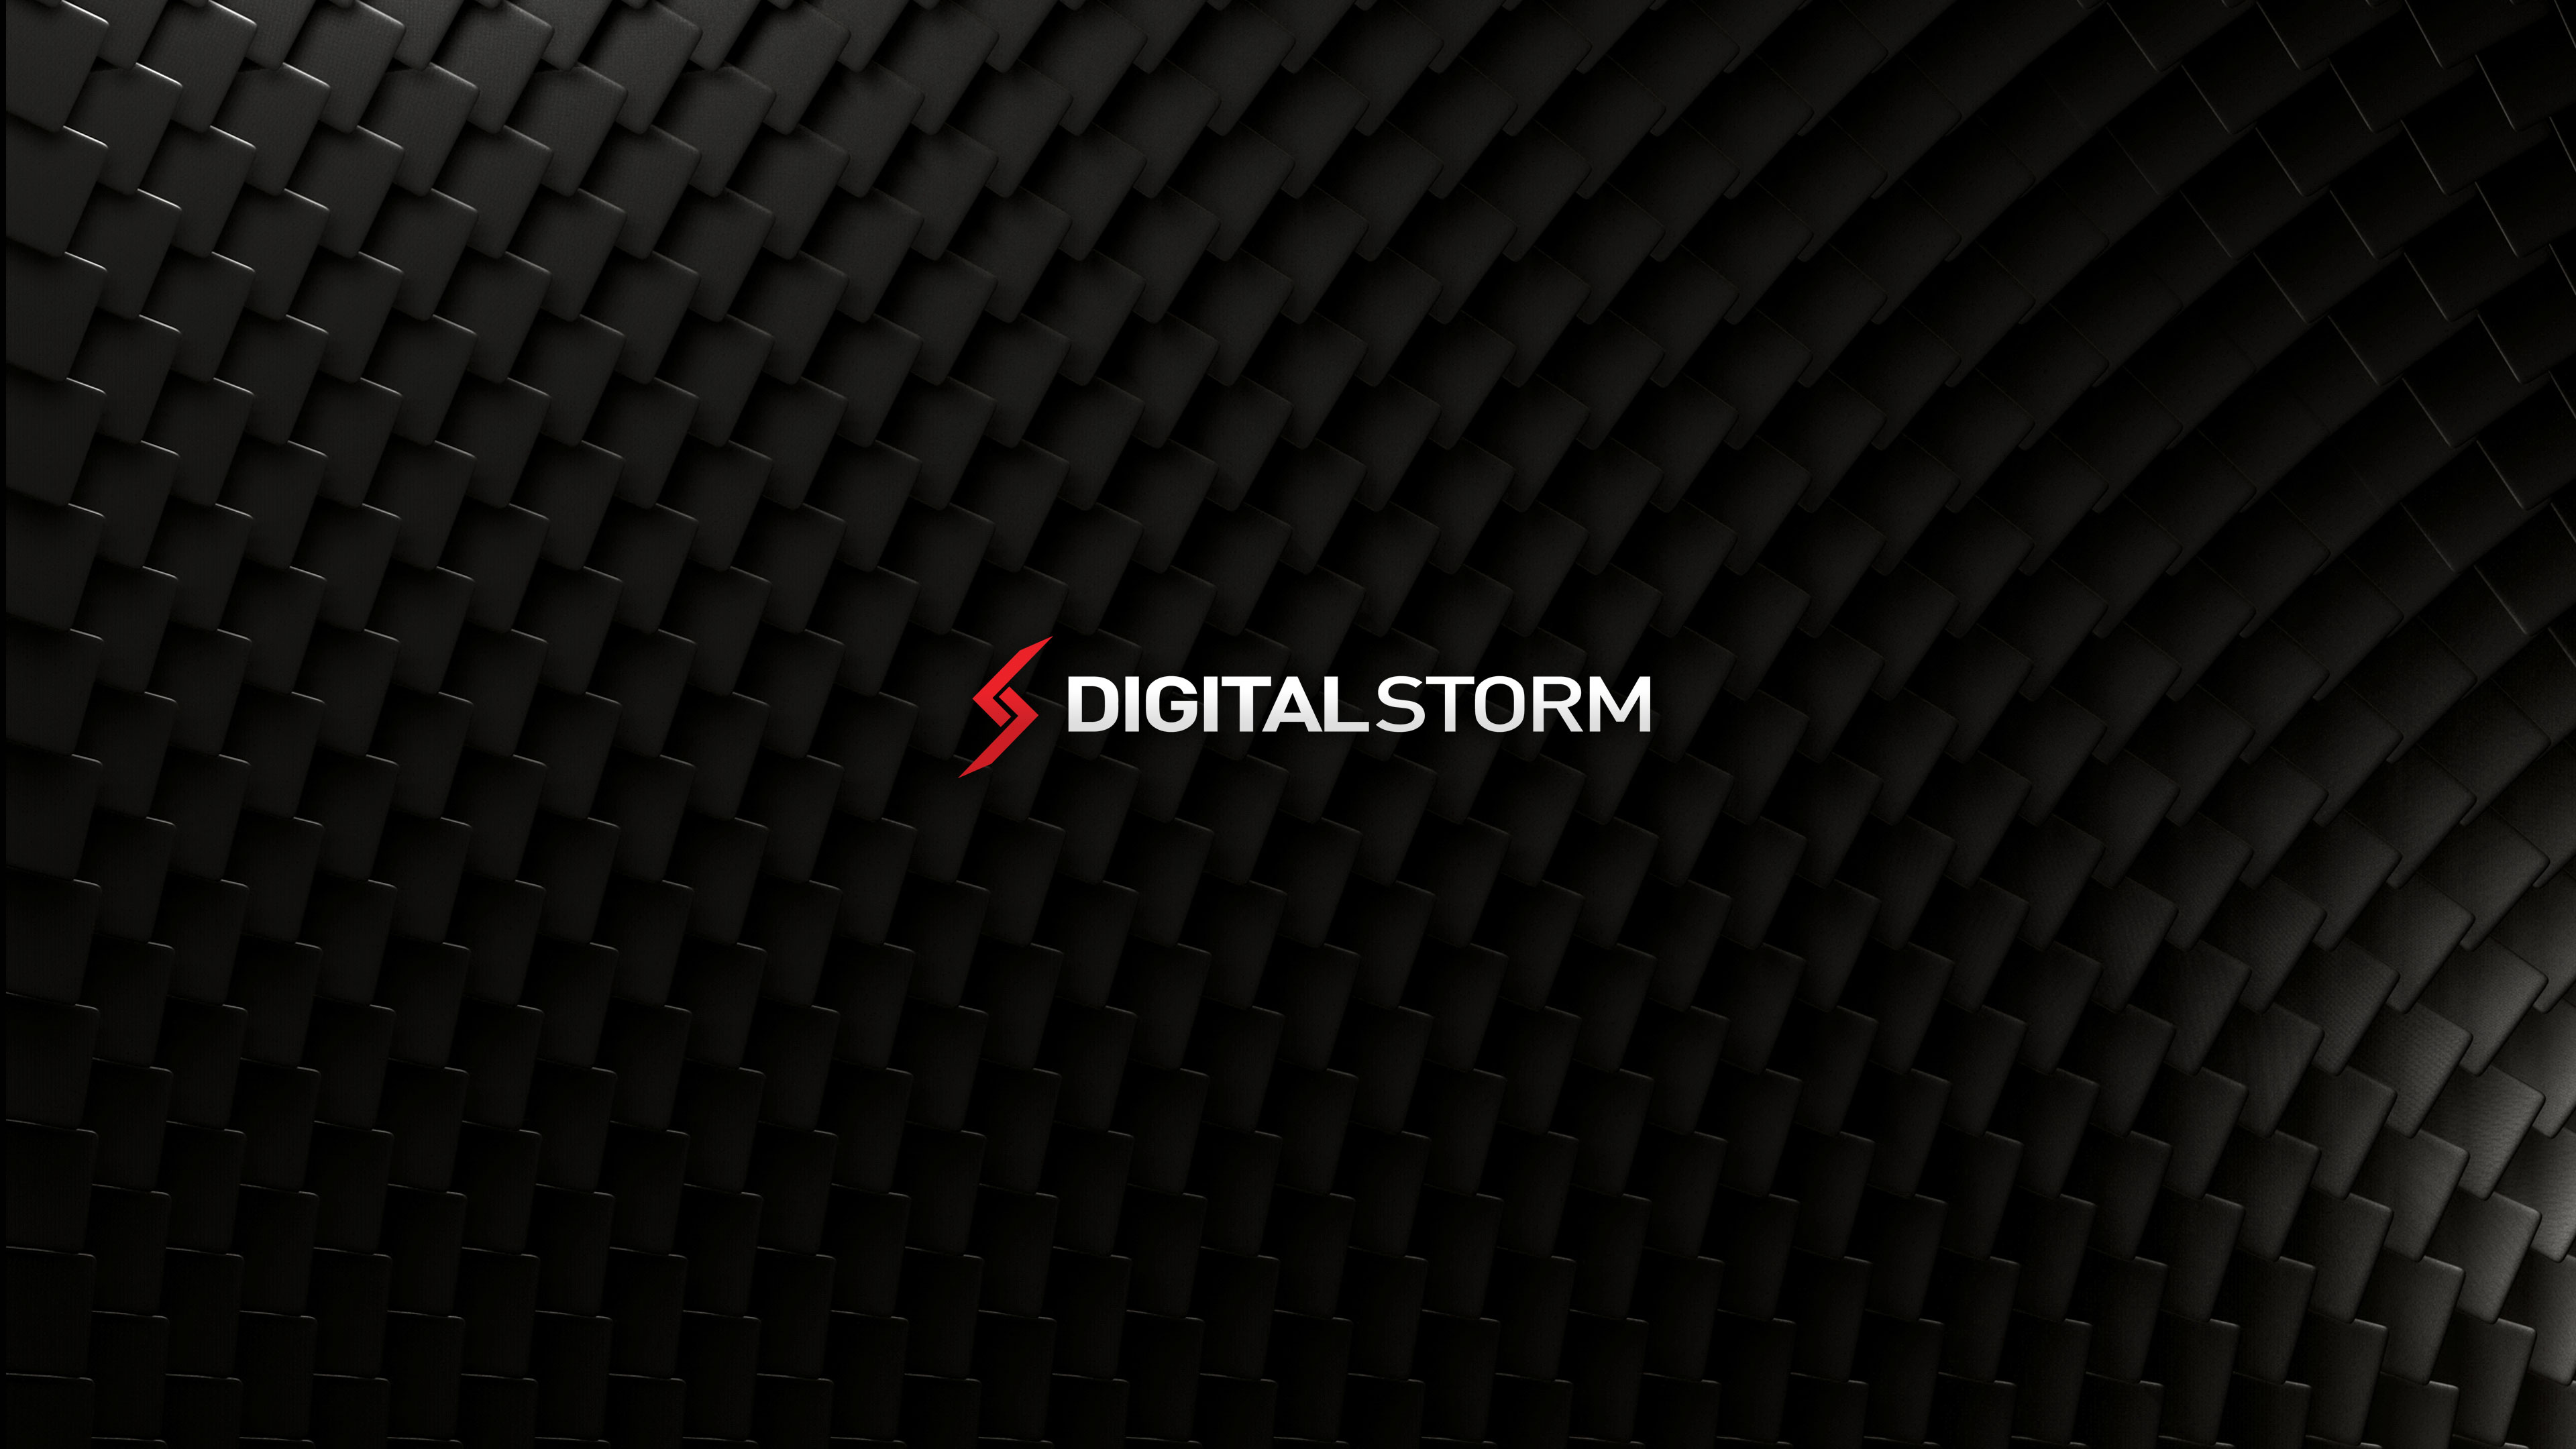 Gaming wallpapers backgrounds logos downloads digital storm f digital storm stacked carbon wallpaper voltagebd Choice Image